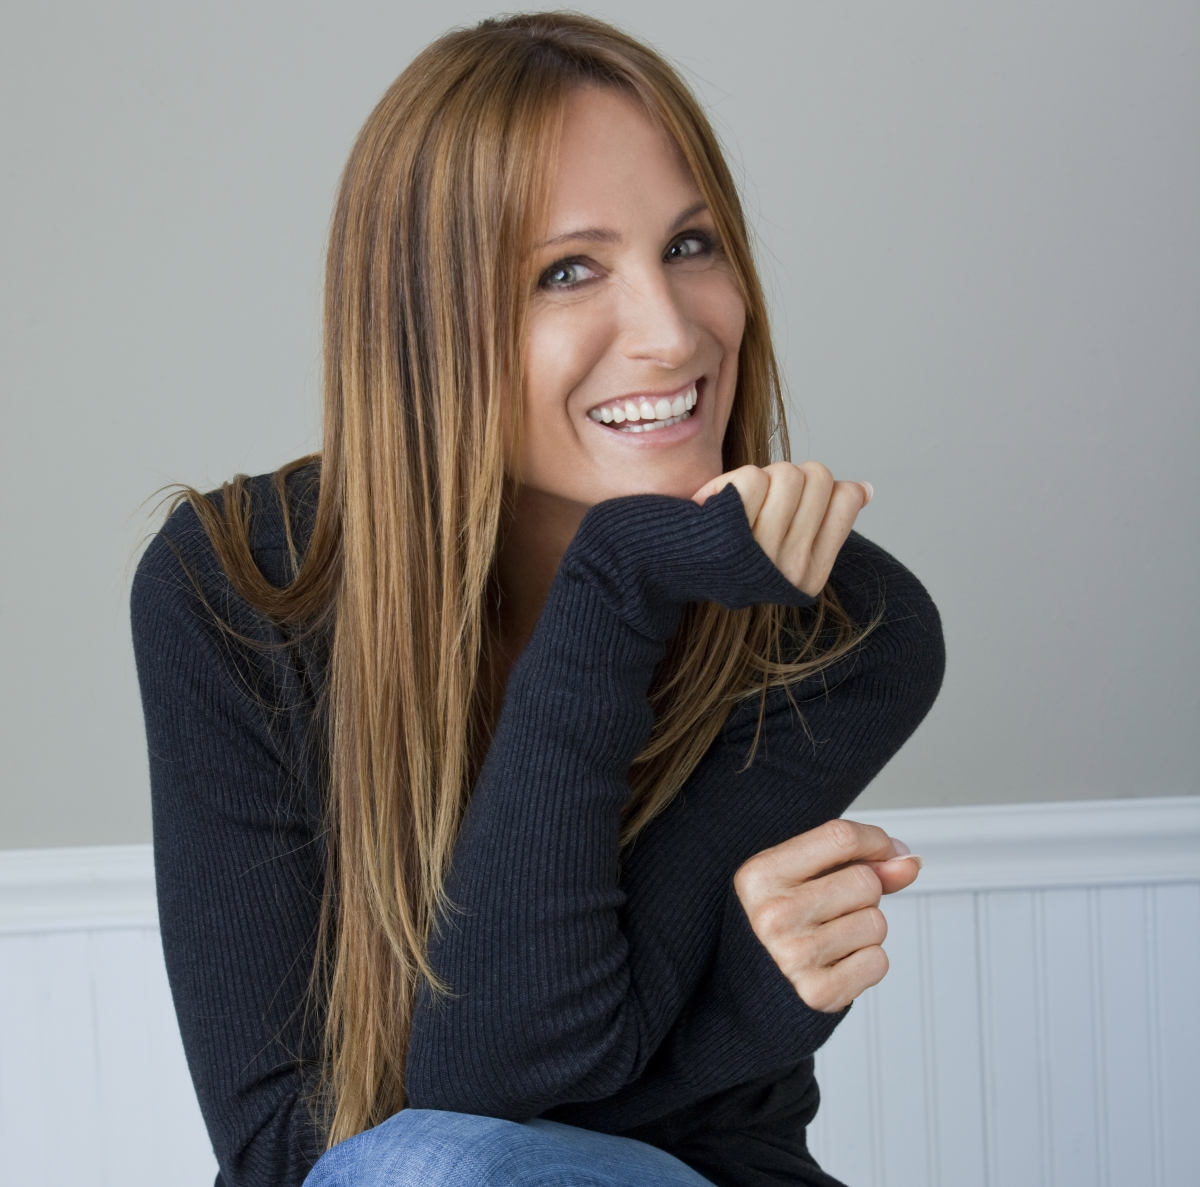 Linda Sivertsen, creator of the Boyfriend Log app and self-help book co-author